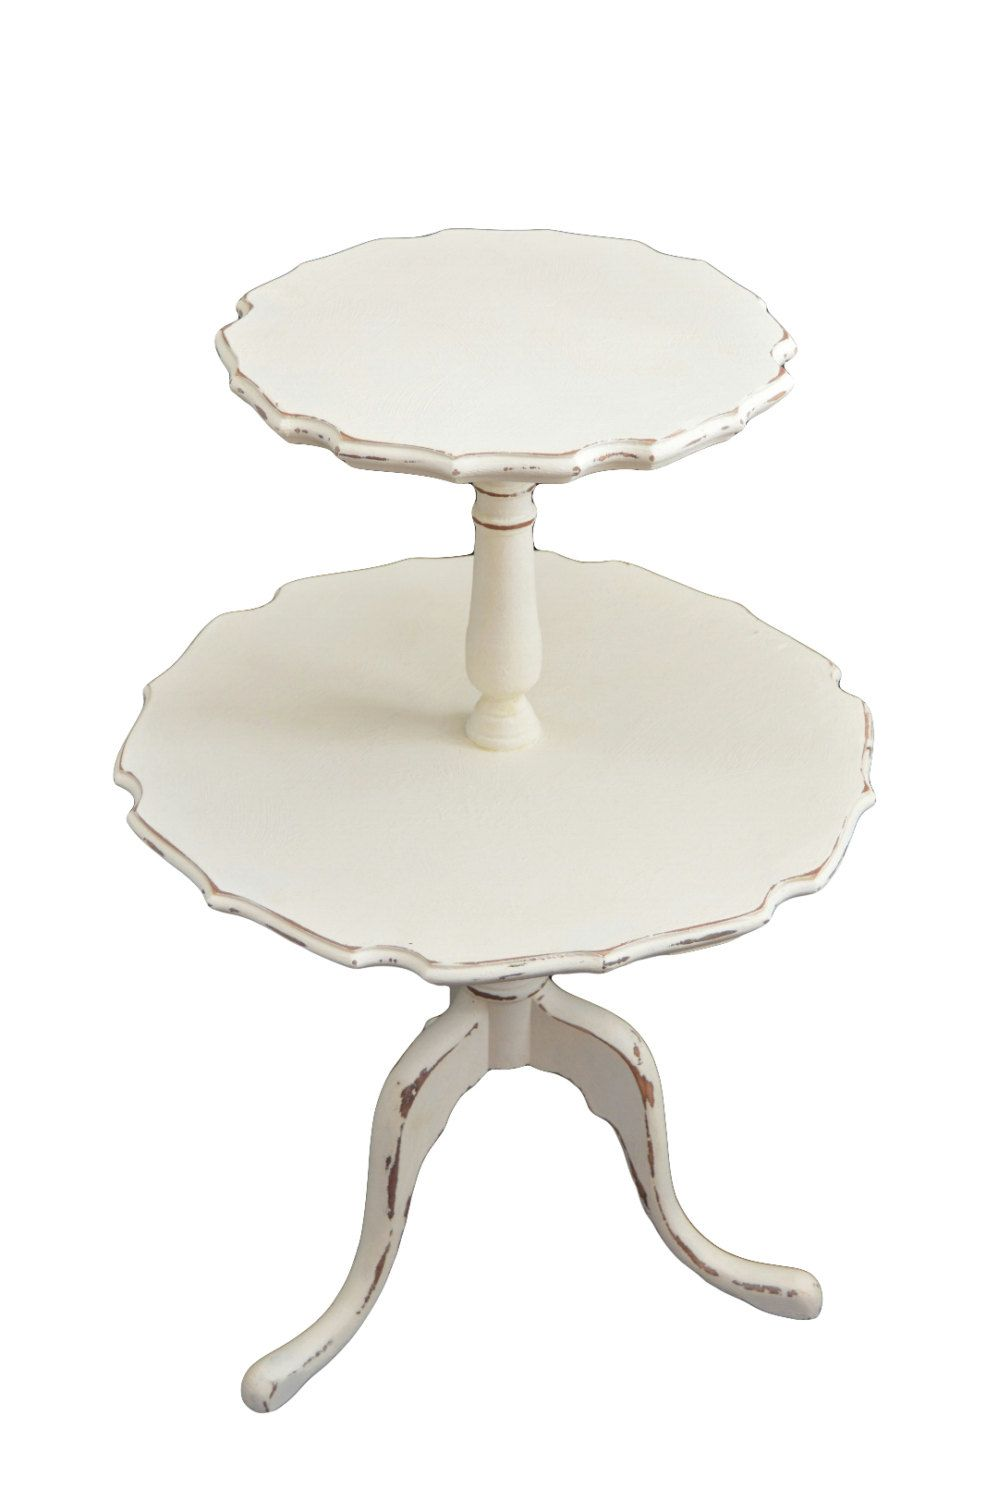 End Table 2 Tier Scalloped Pedestal Table Vintage Chippy White Painted  Furniture Round Table Shabby Chic